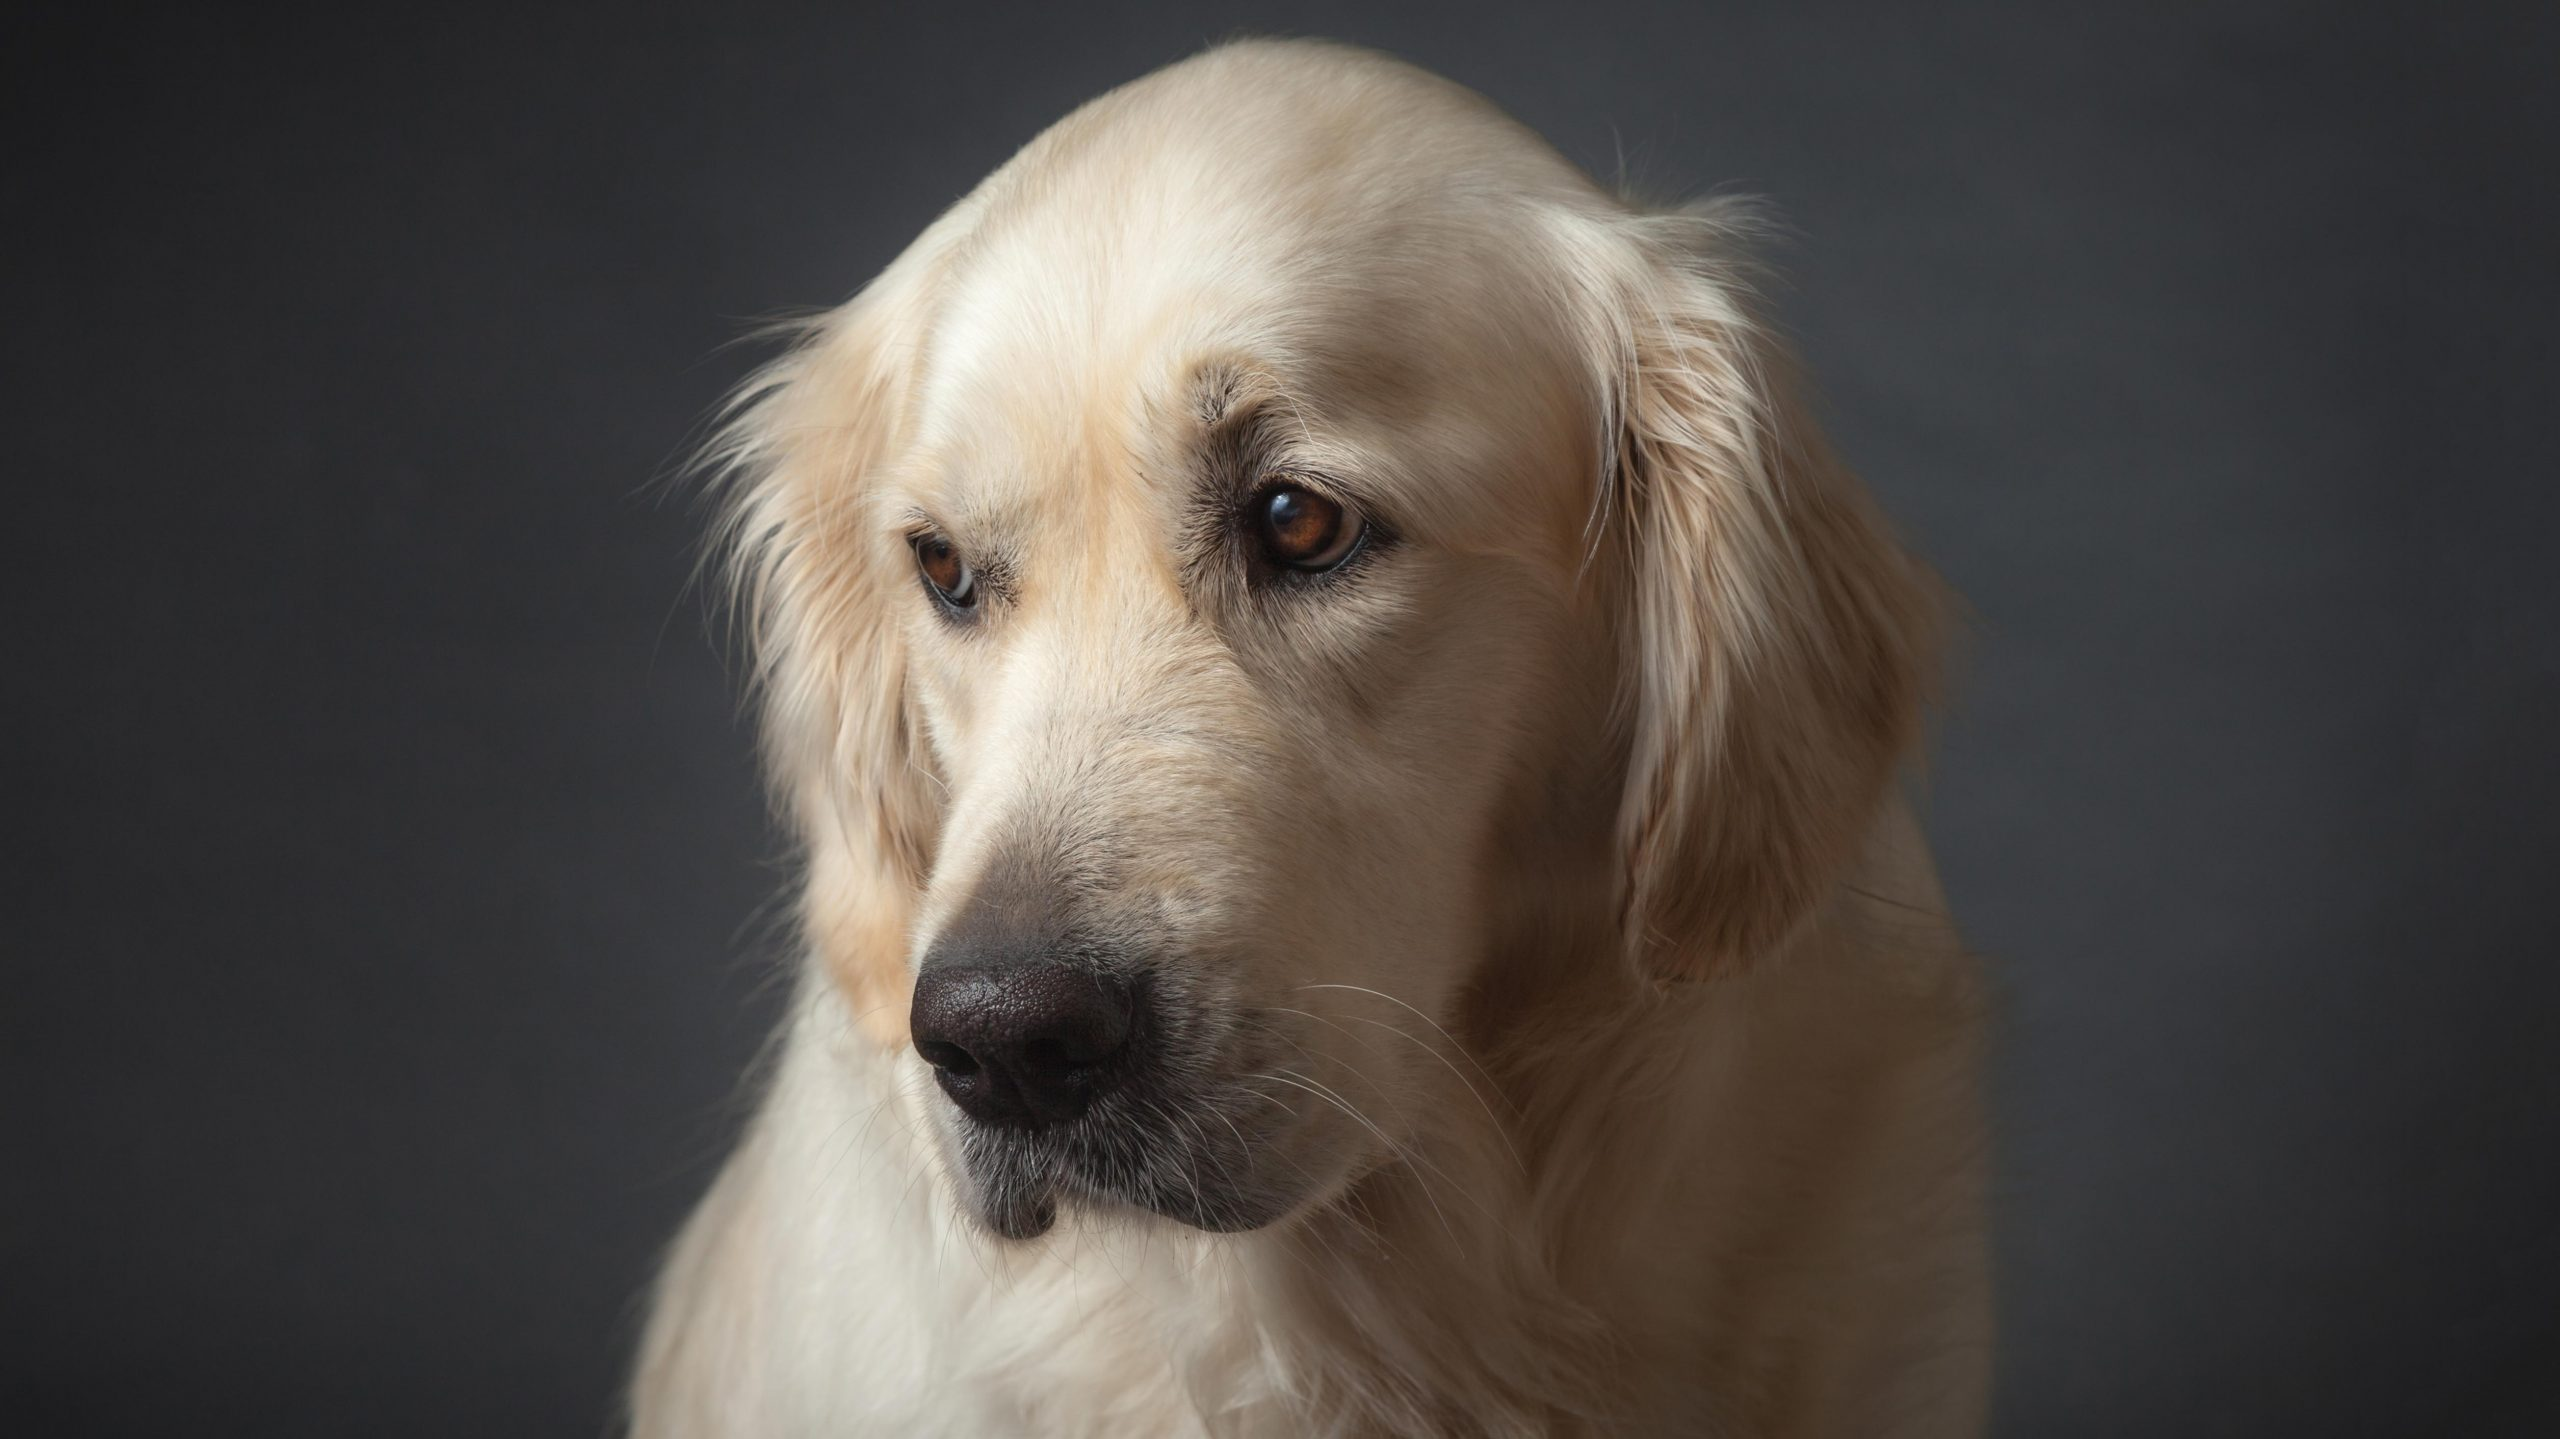 Bit sad looking but cute Golden Retriever